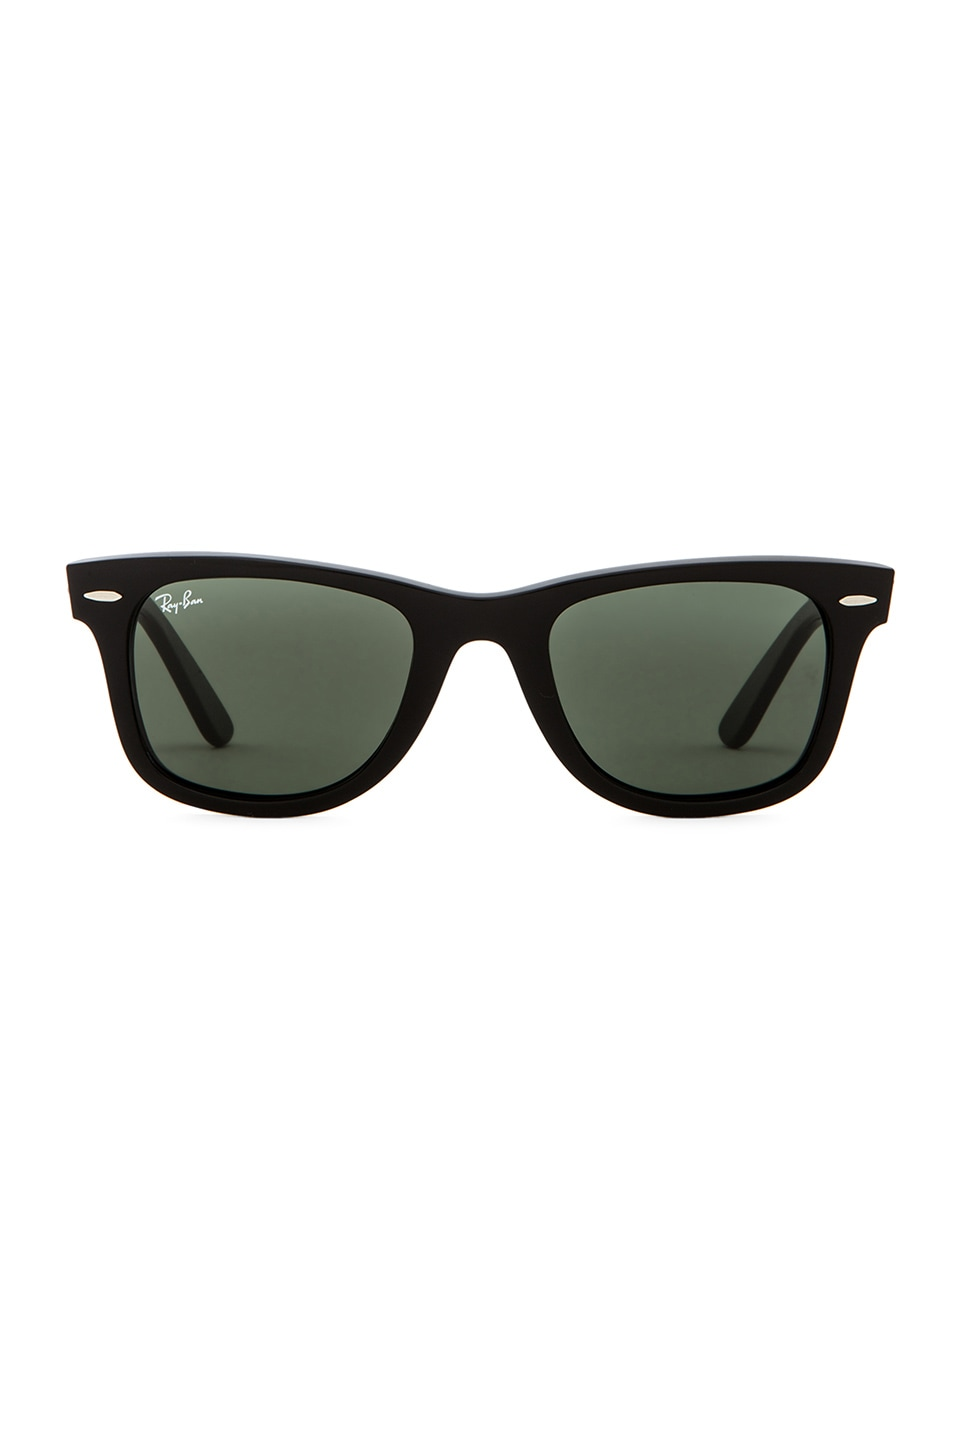 Ray-Ban Original Wayfarer Classic in Black